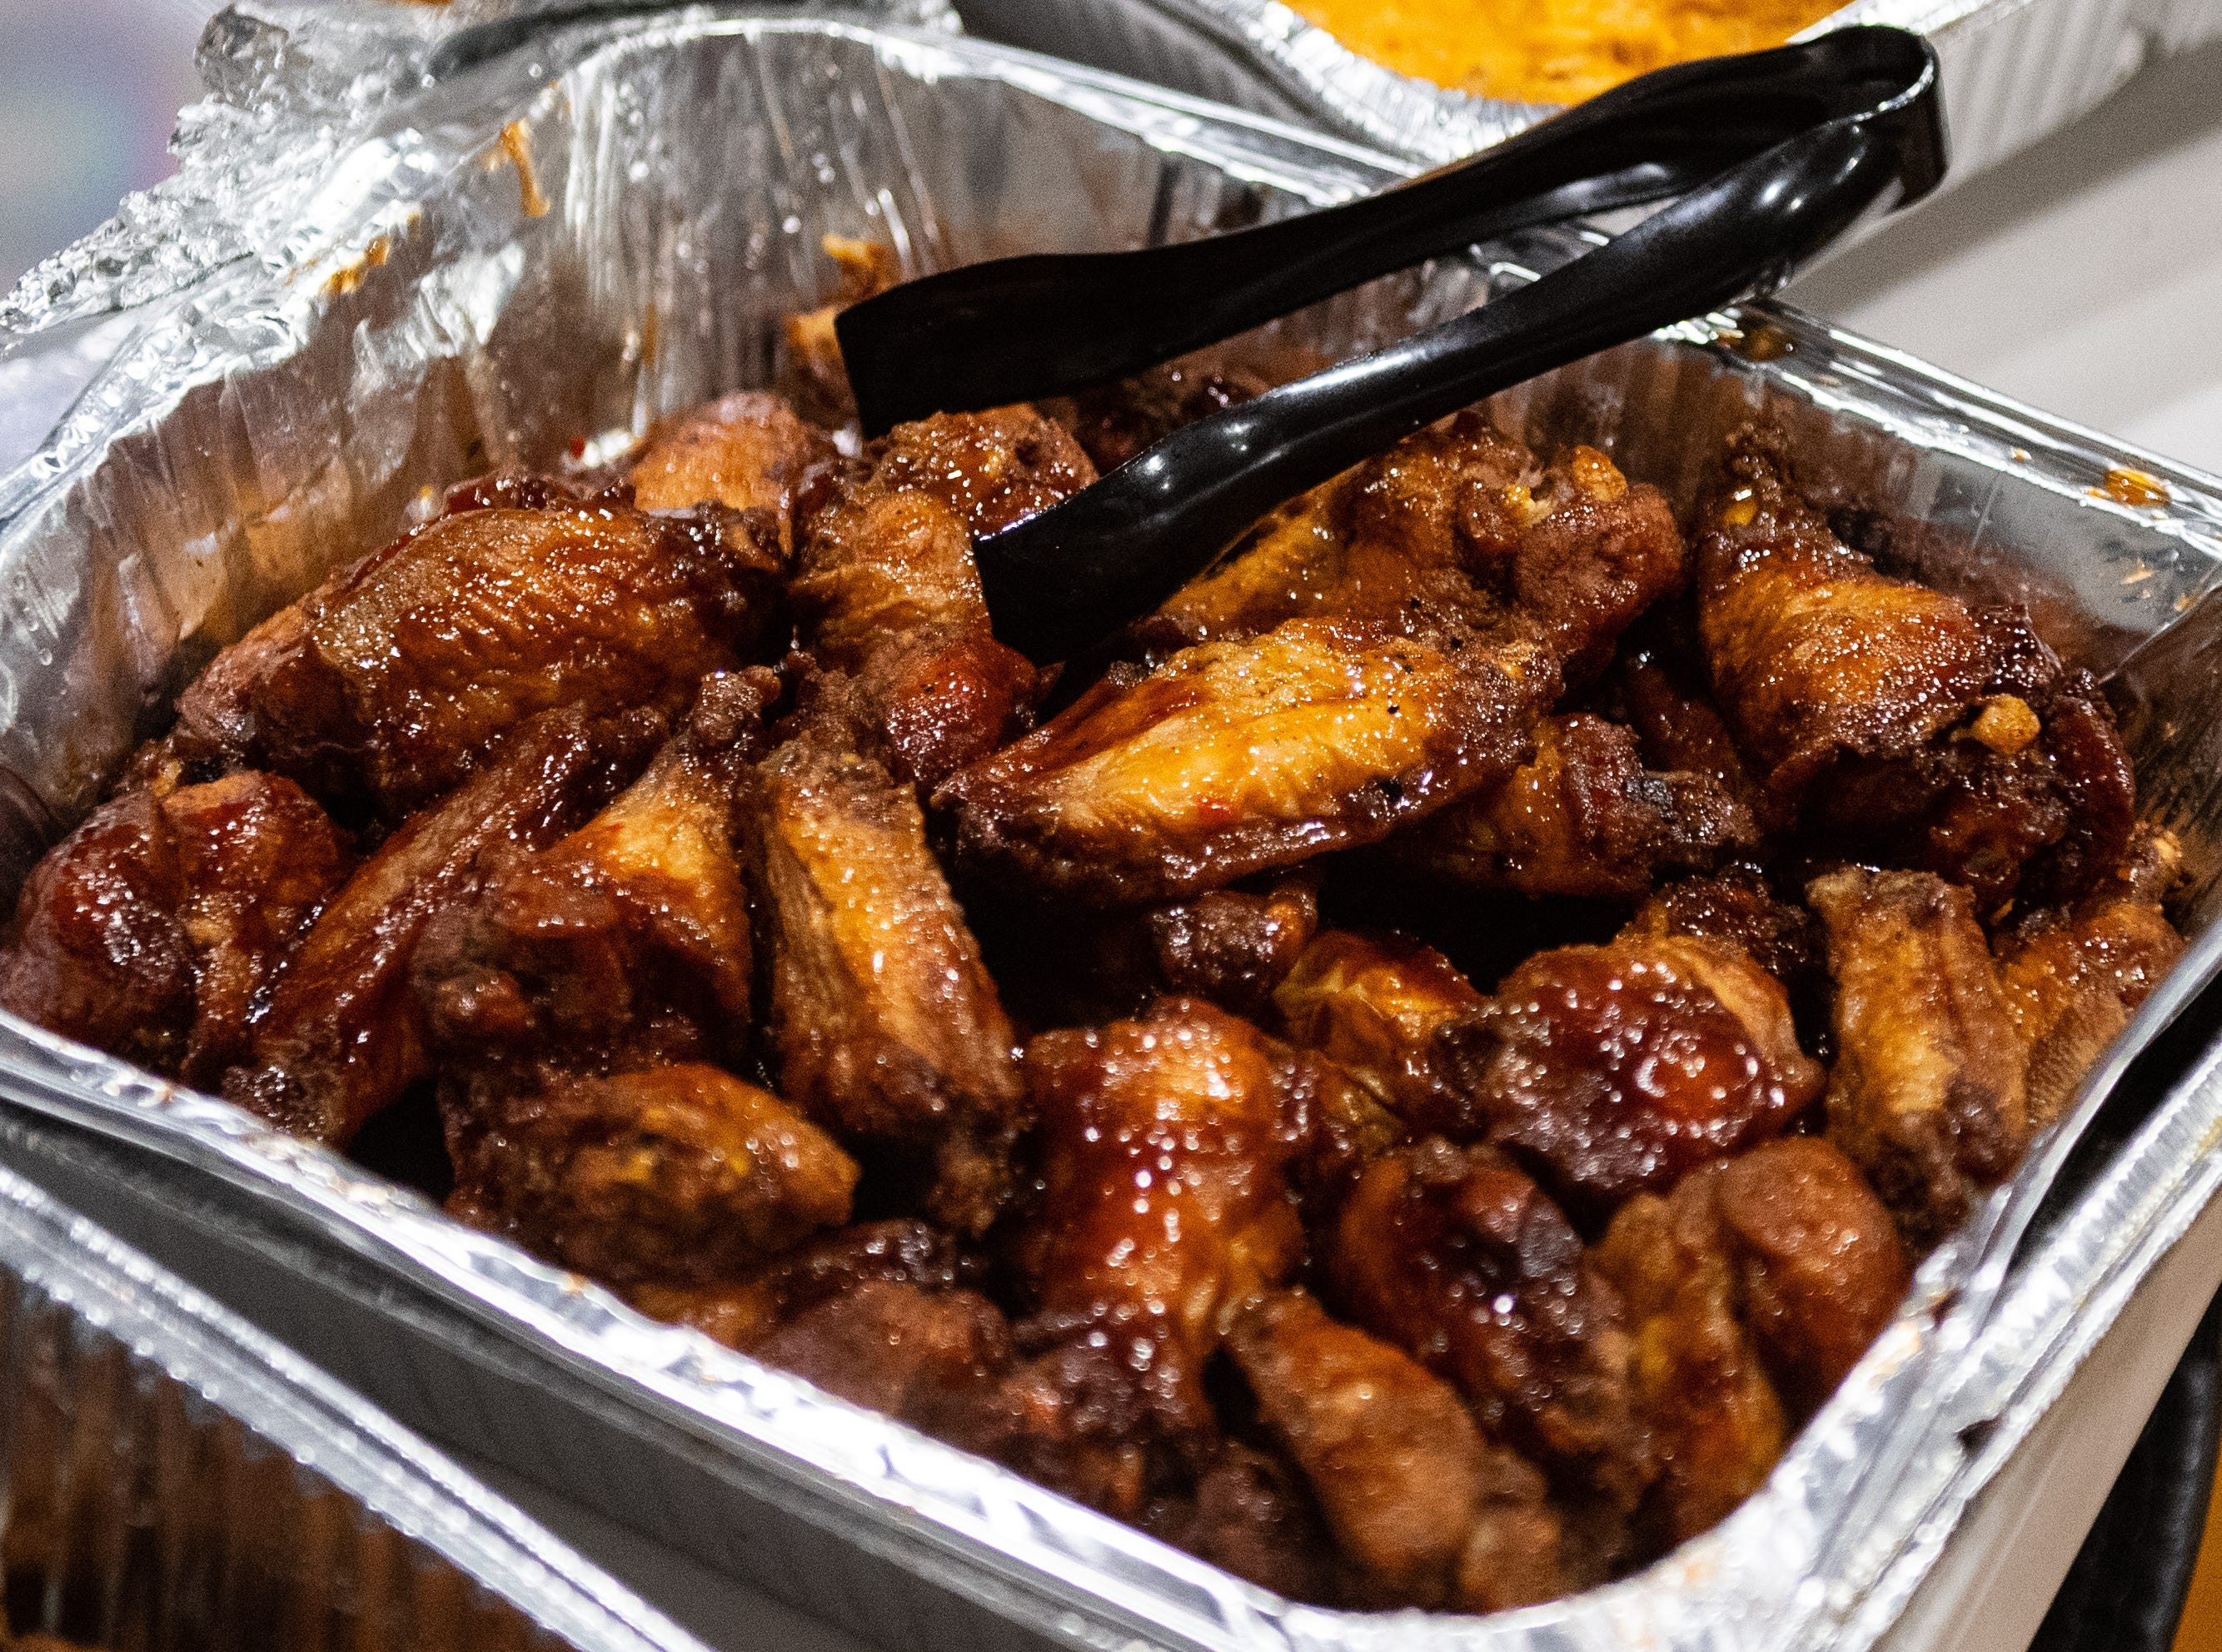 The grand opening party featured a variety of foods including barbecue wings, fried chicken and strawberries, March 7, 2019.